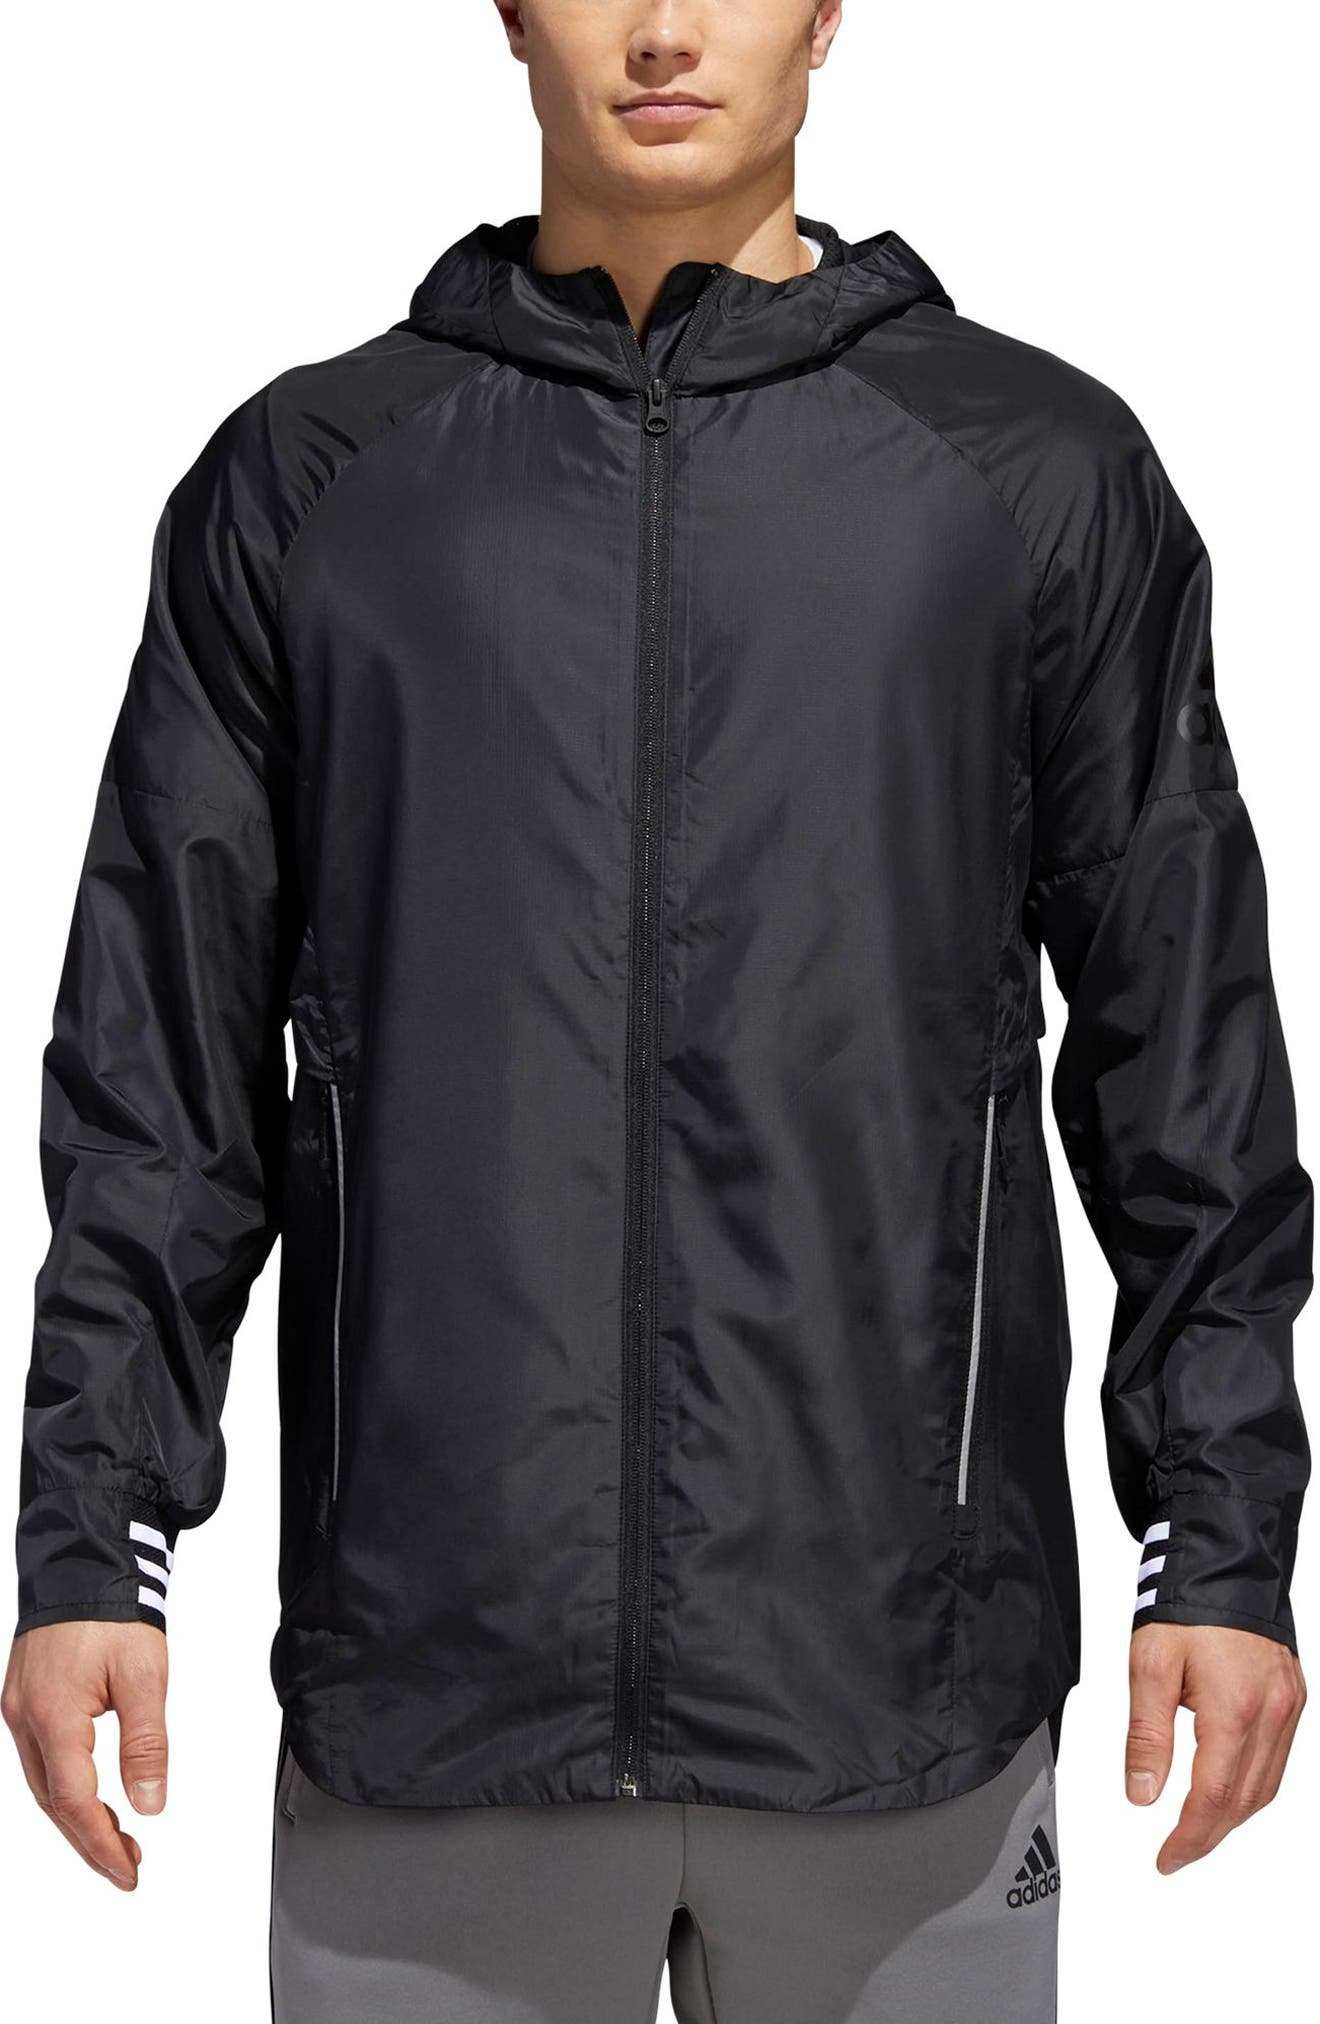 ID Wovenshell Jacket,                             Main thumbnail 1, color,                             001